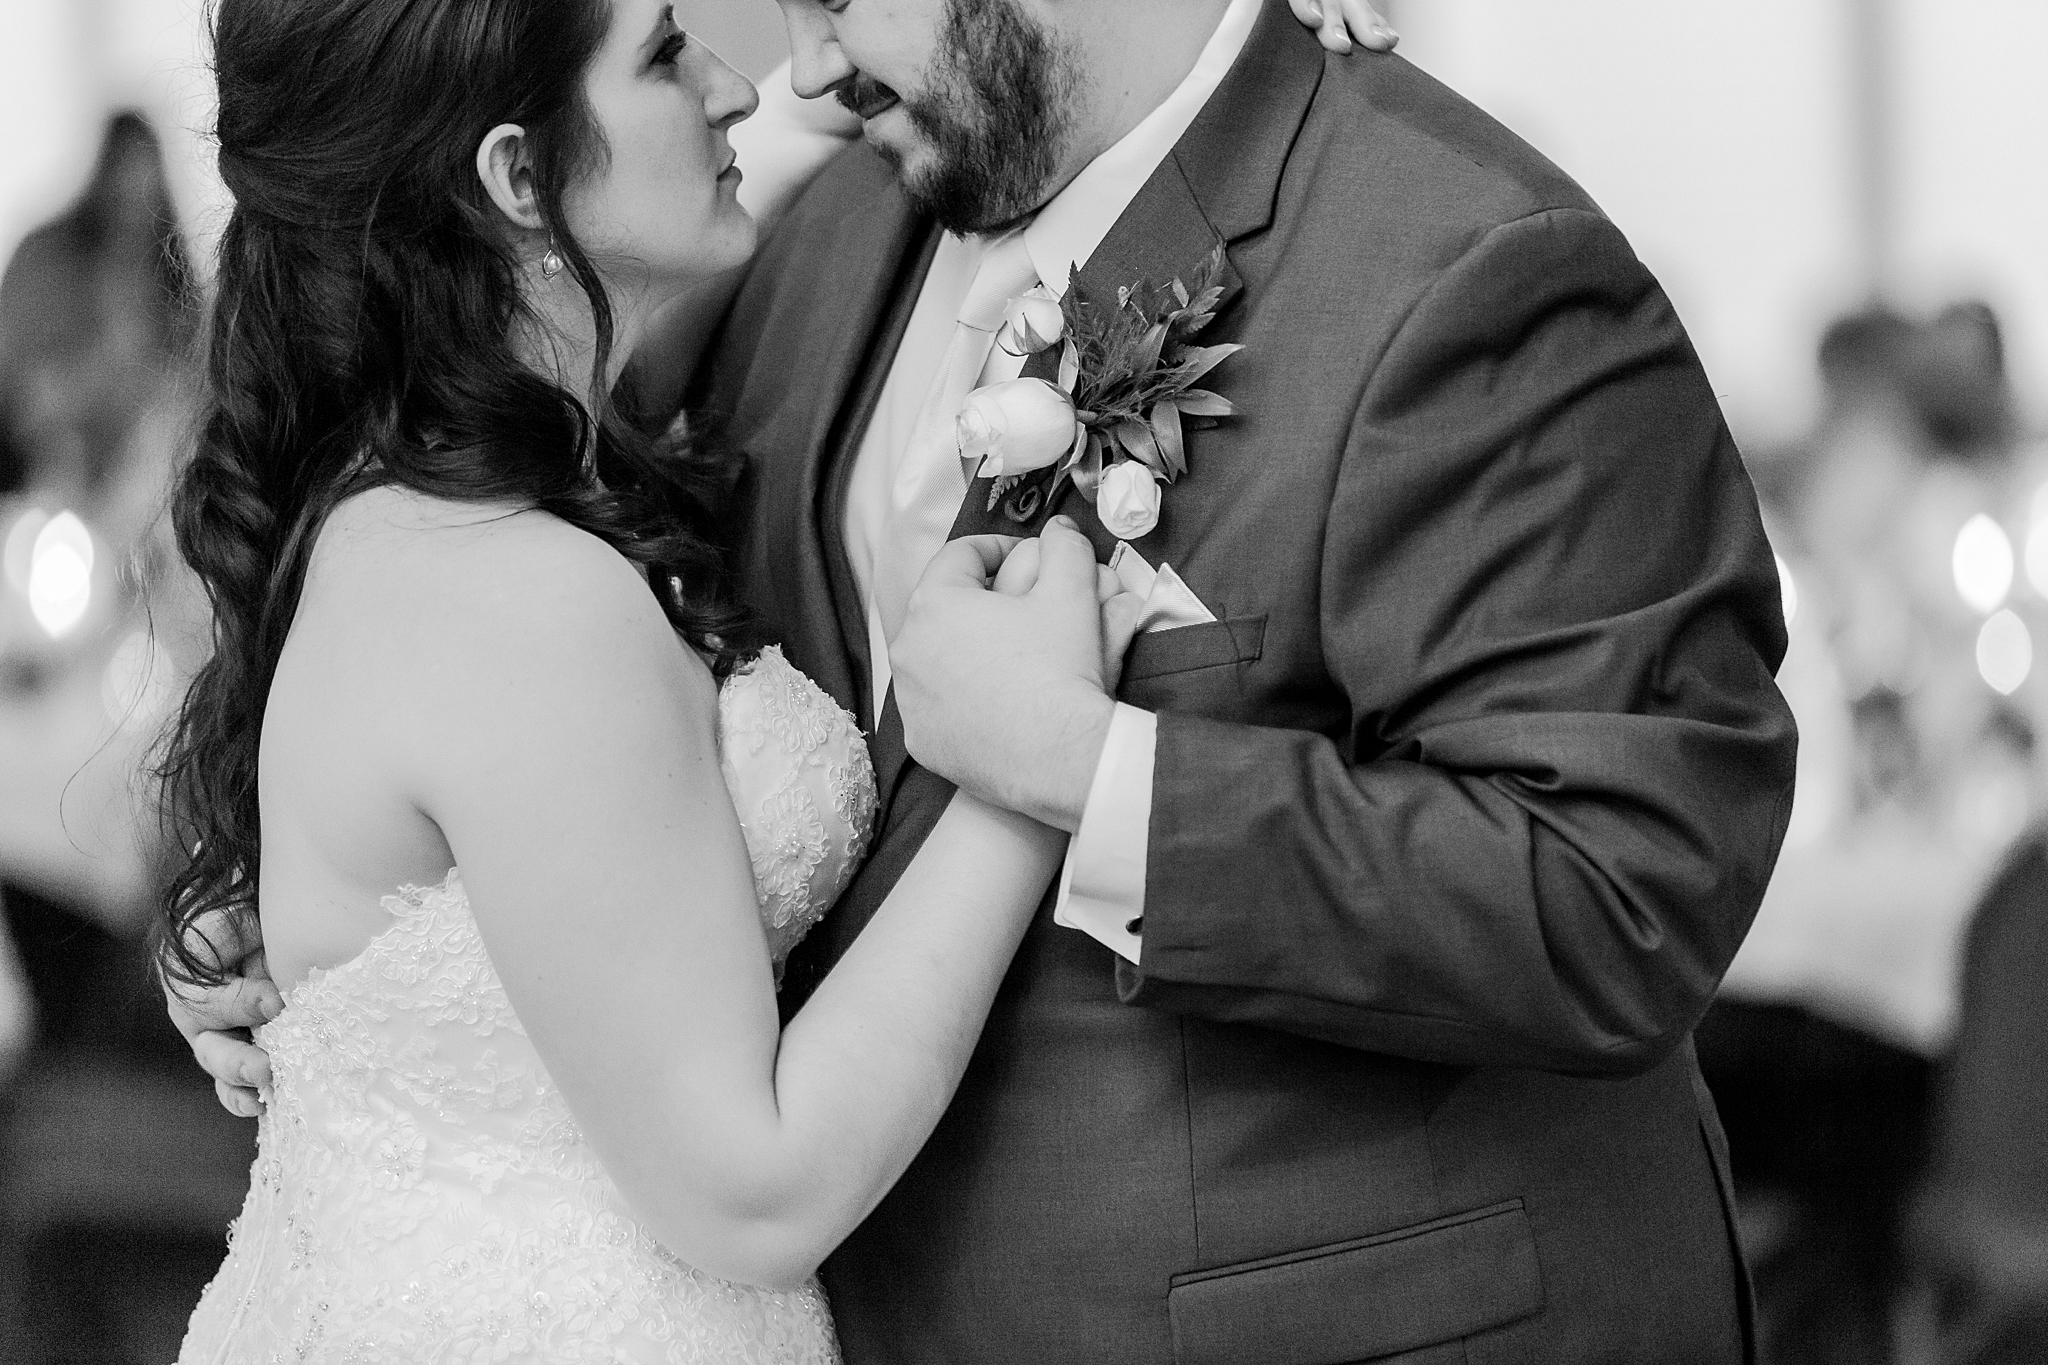 joyful-romantic-modern-laid-back-wedding-photography-in-detroit-ann-arbor-northern-mi-and-chicago-by-courtney-carolyn-photography_0057.jpg